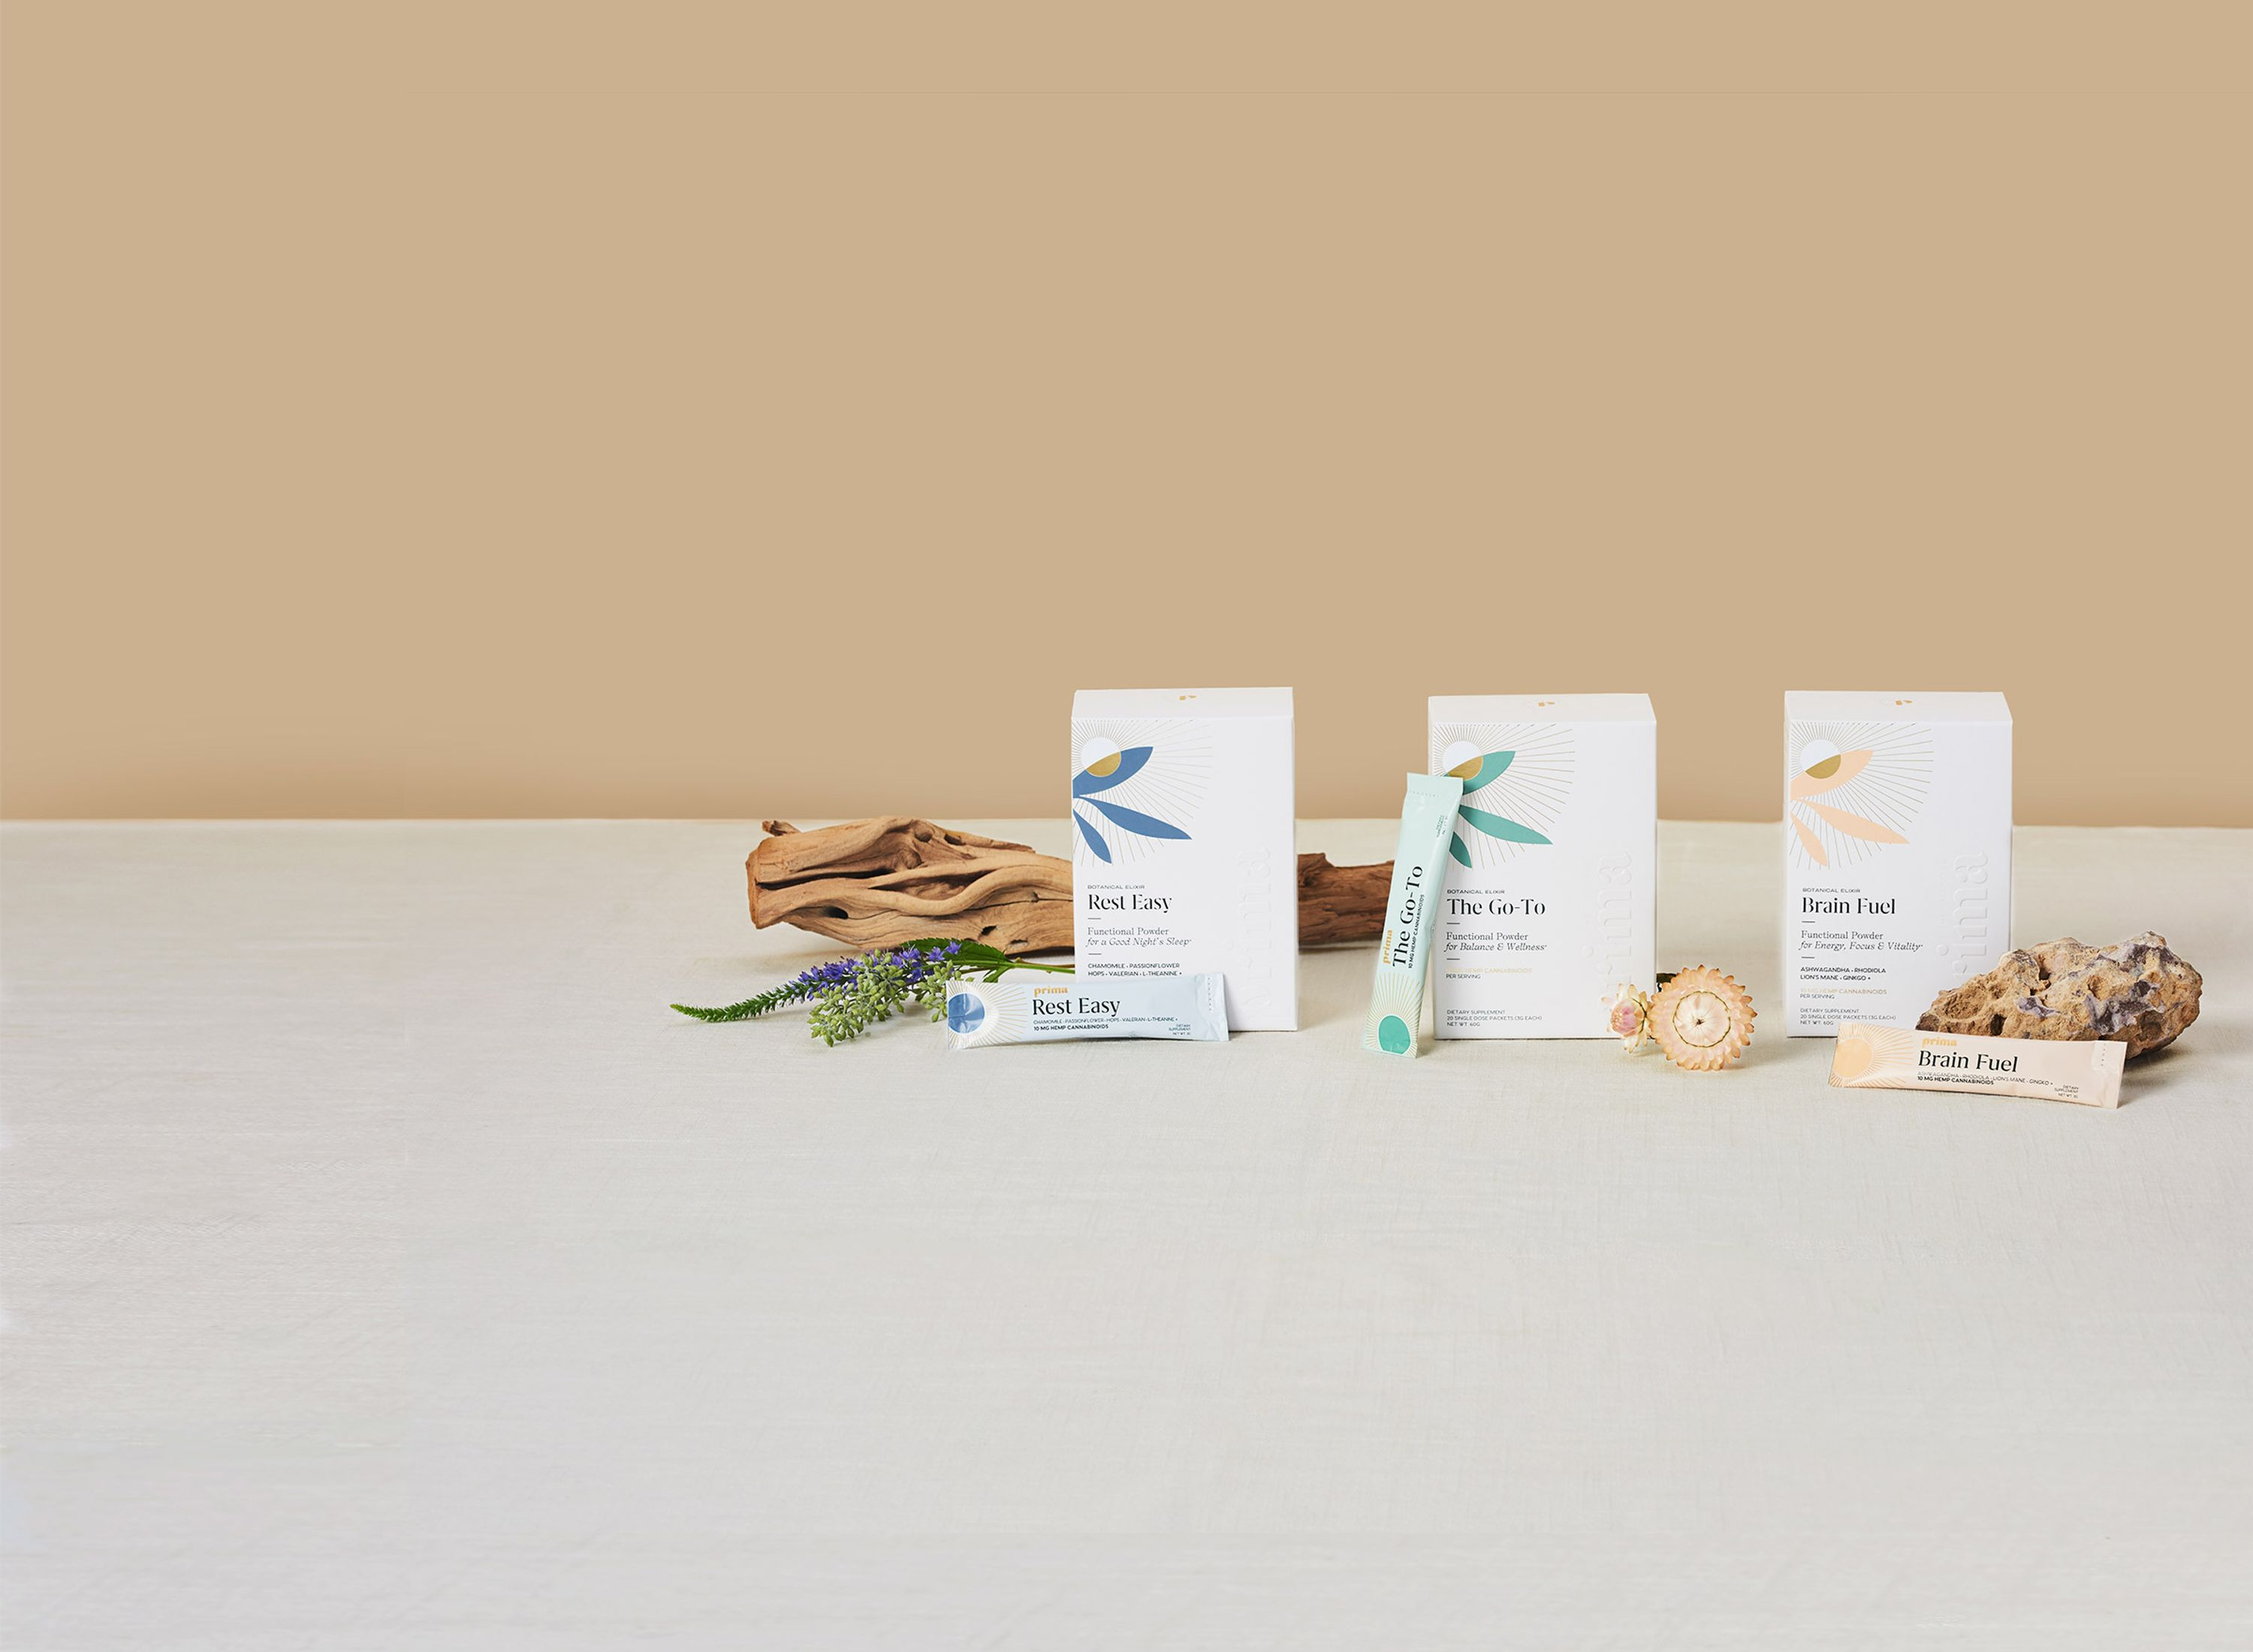 Introducing Botanical Elixirs —designed for wellness, focus and sleep.